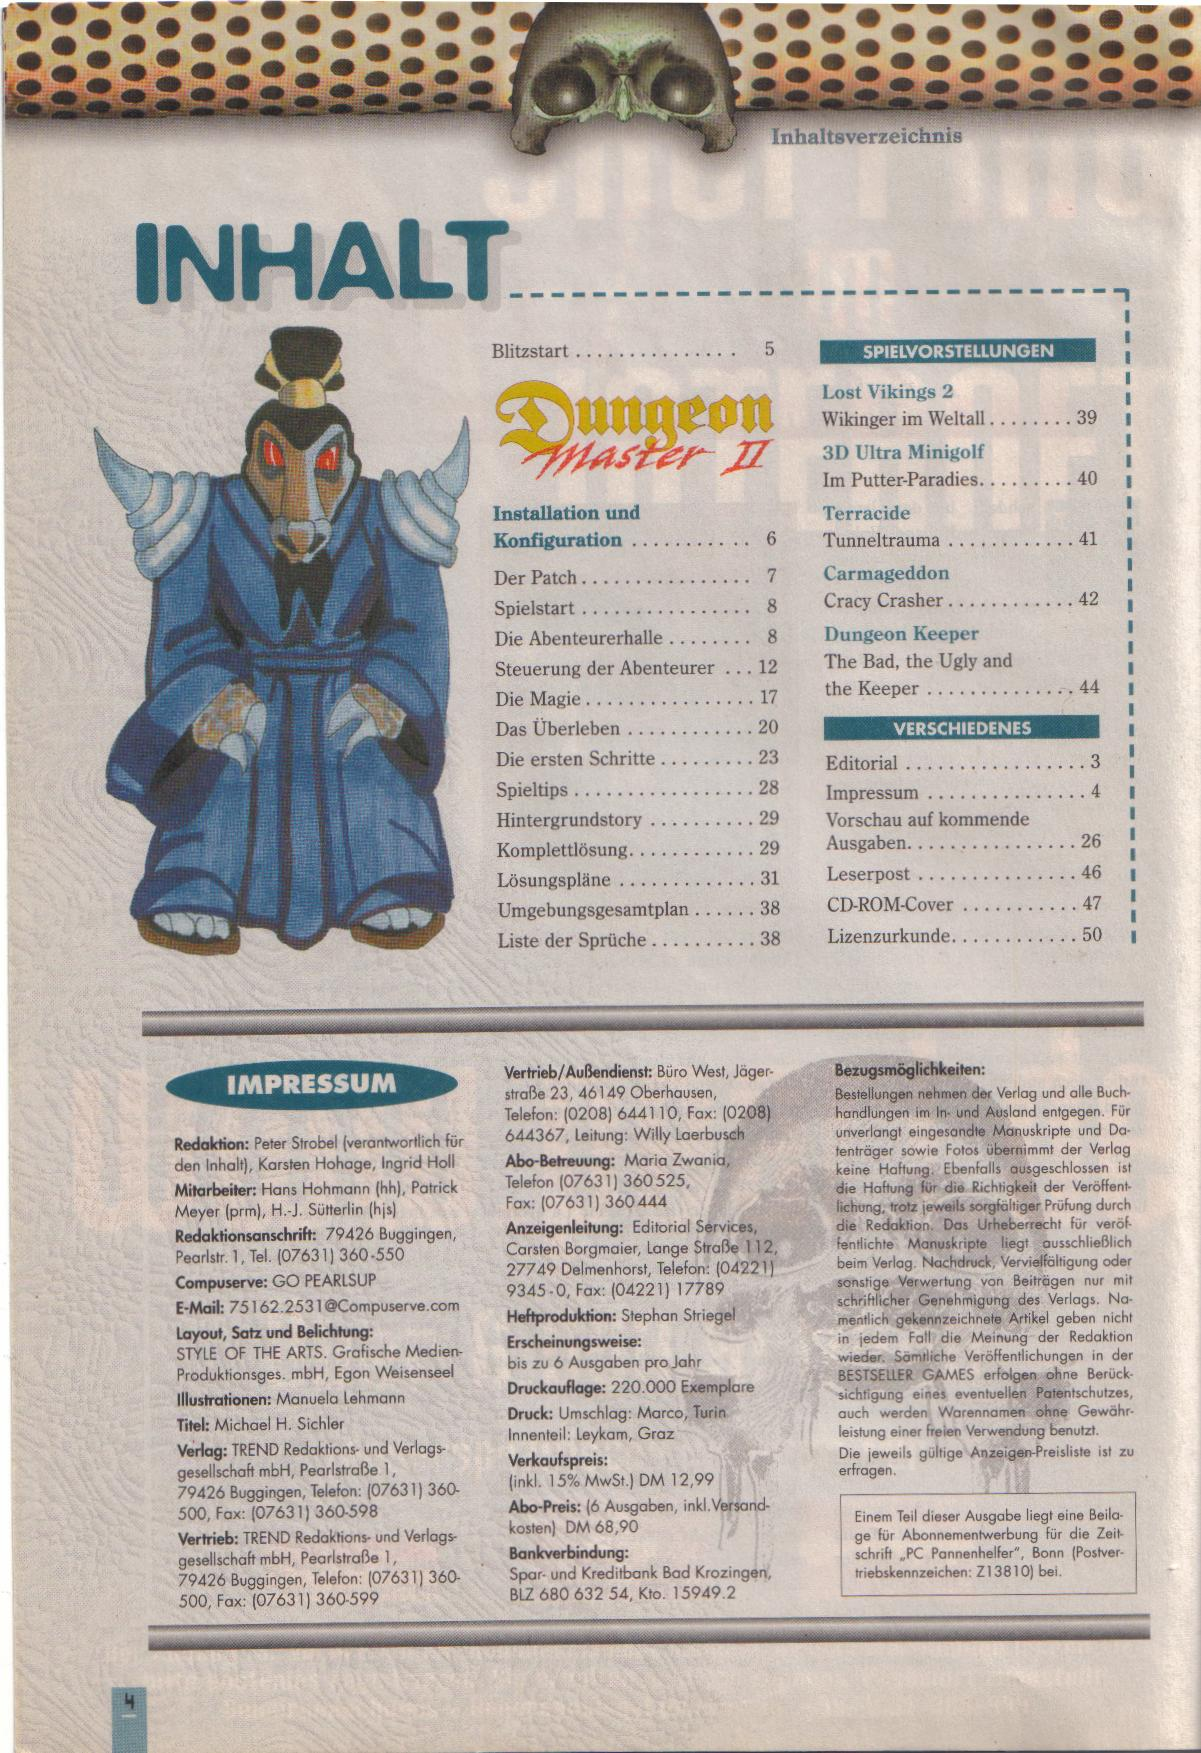 Dungeon Master II for PC (German, Best Seller Games) Page 4